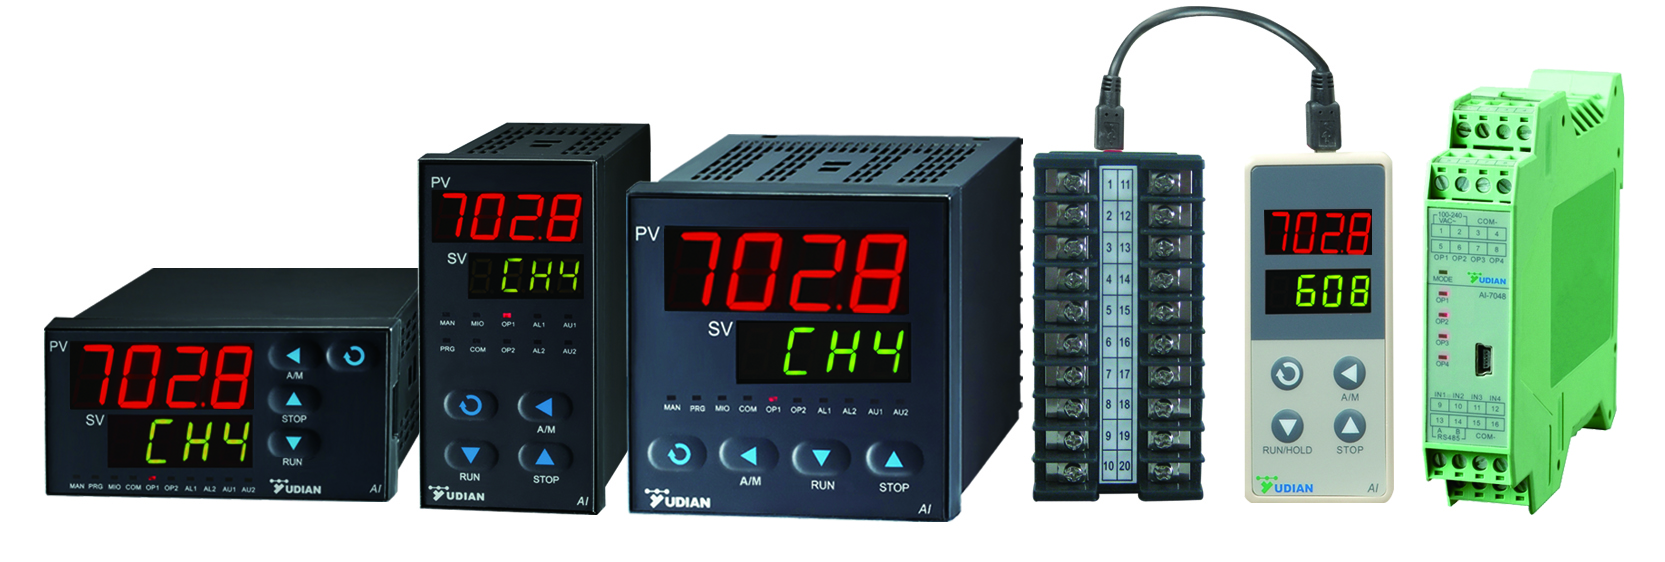 mold four channel temperature controllers